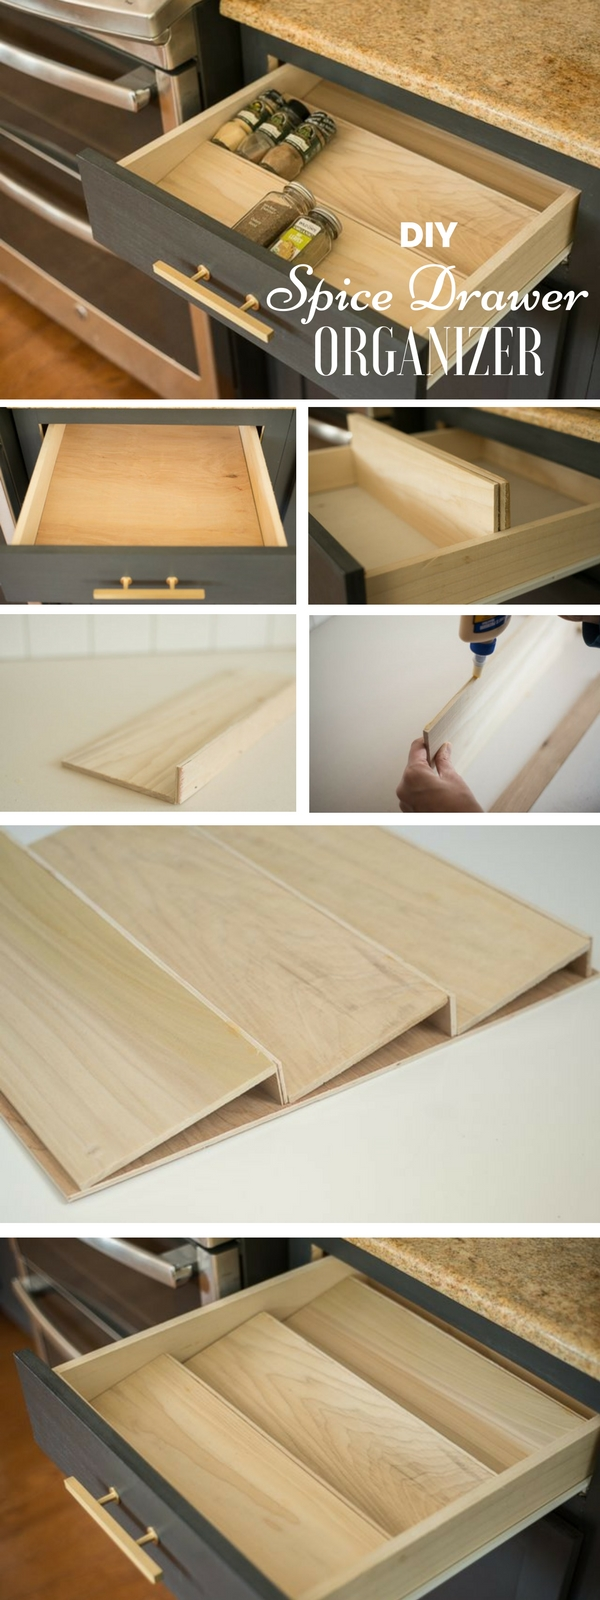 Check out the tutorial: #DIY Spice Drawer Organizer